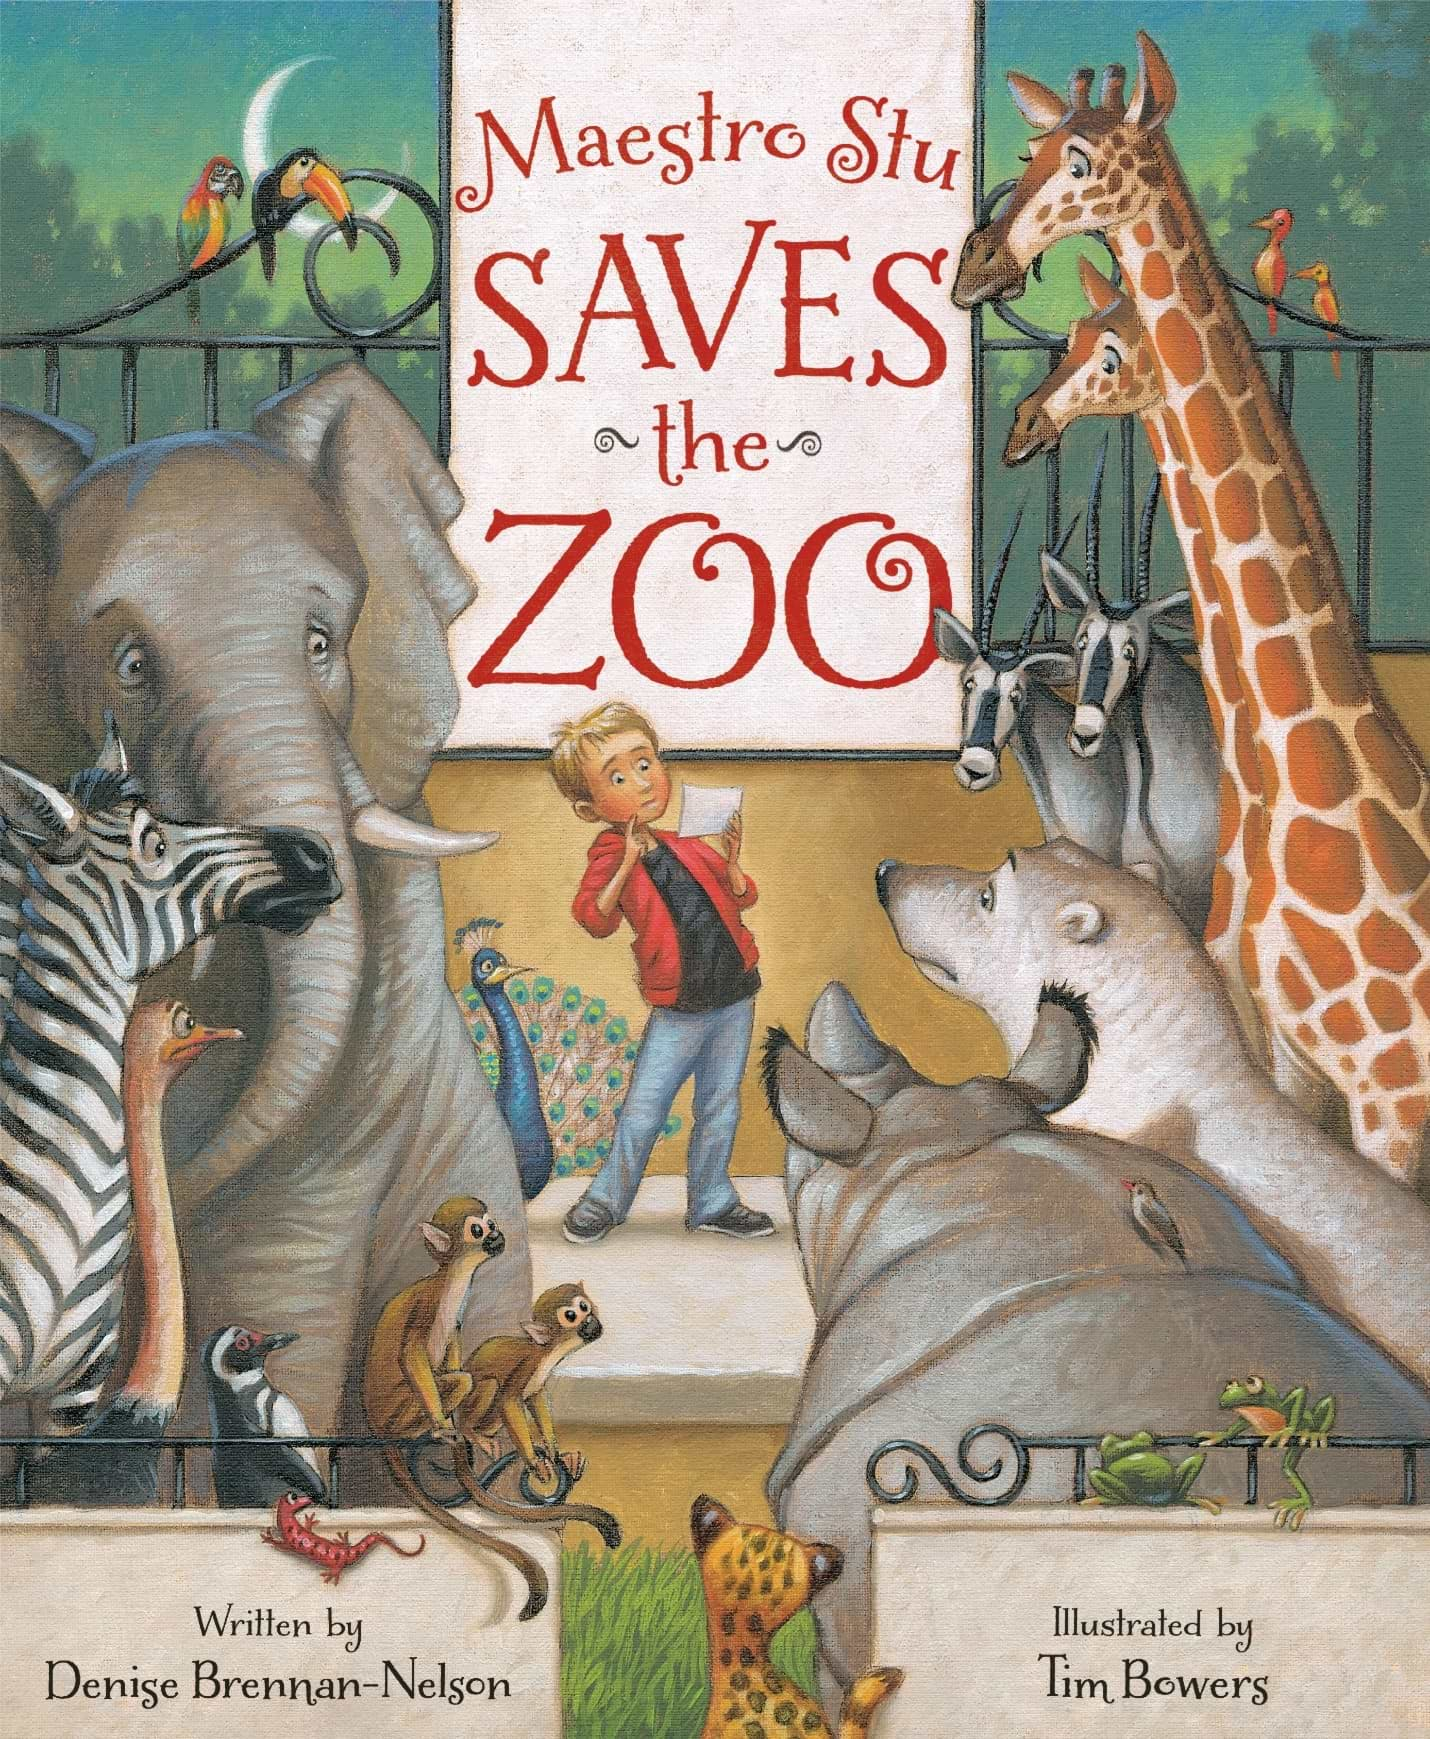 Maestro Stu Saves the Zoo book cover